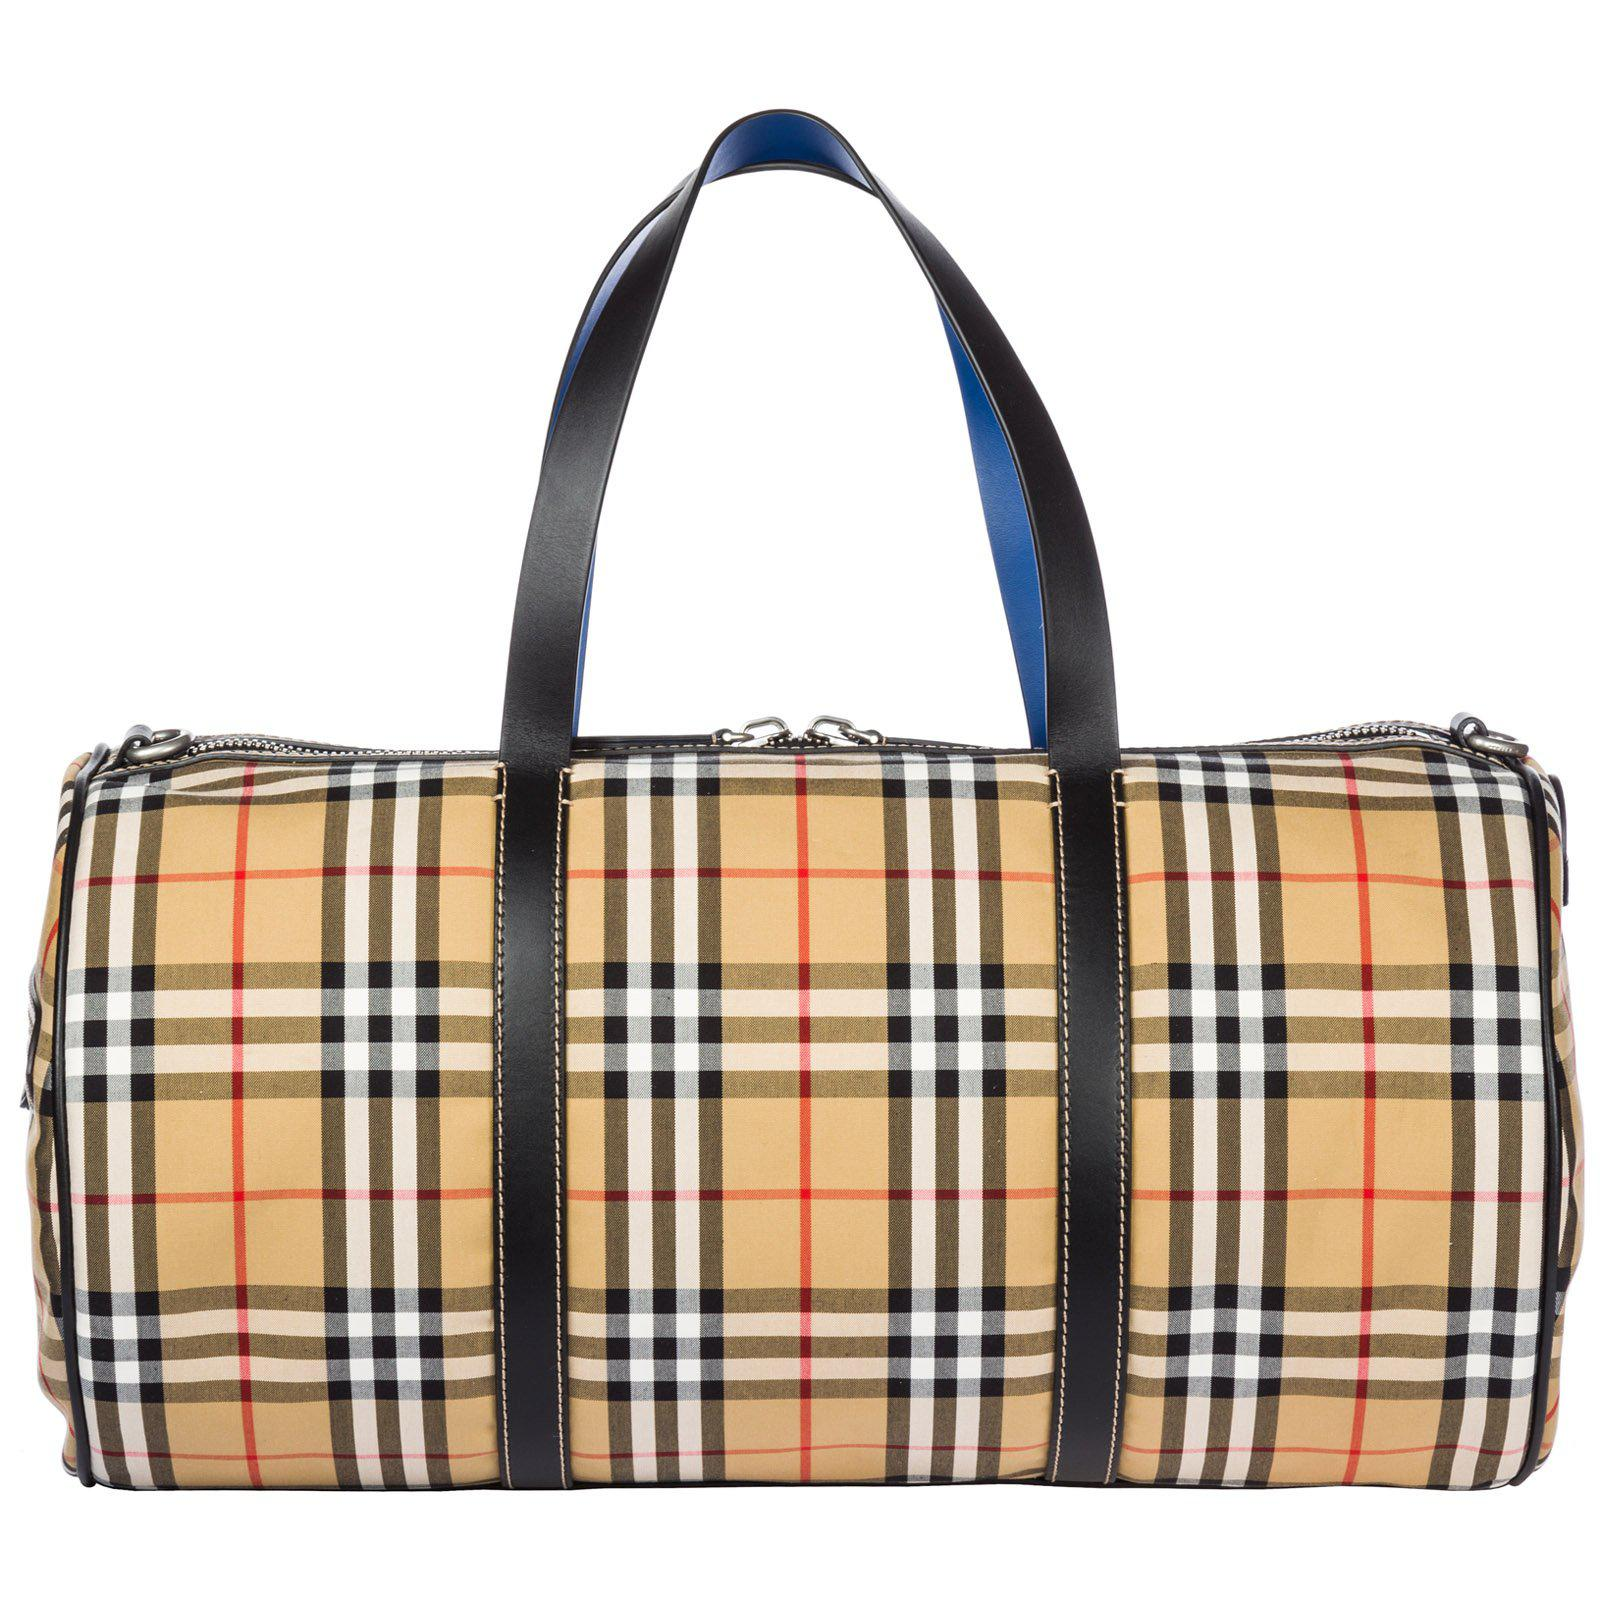 0fd2414273c0 Burberry Large Vintage Check Duffle Bag in Natural for Men - Lyst